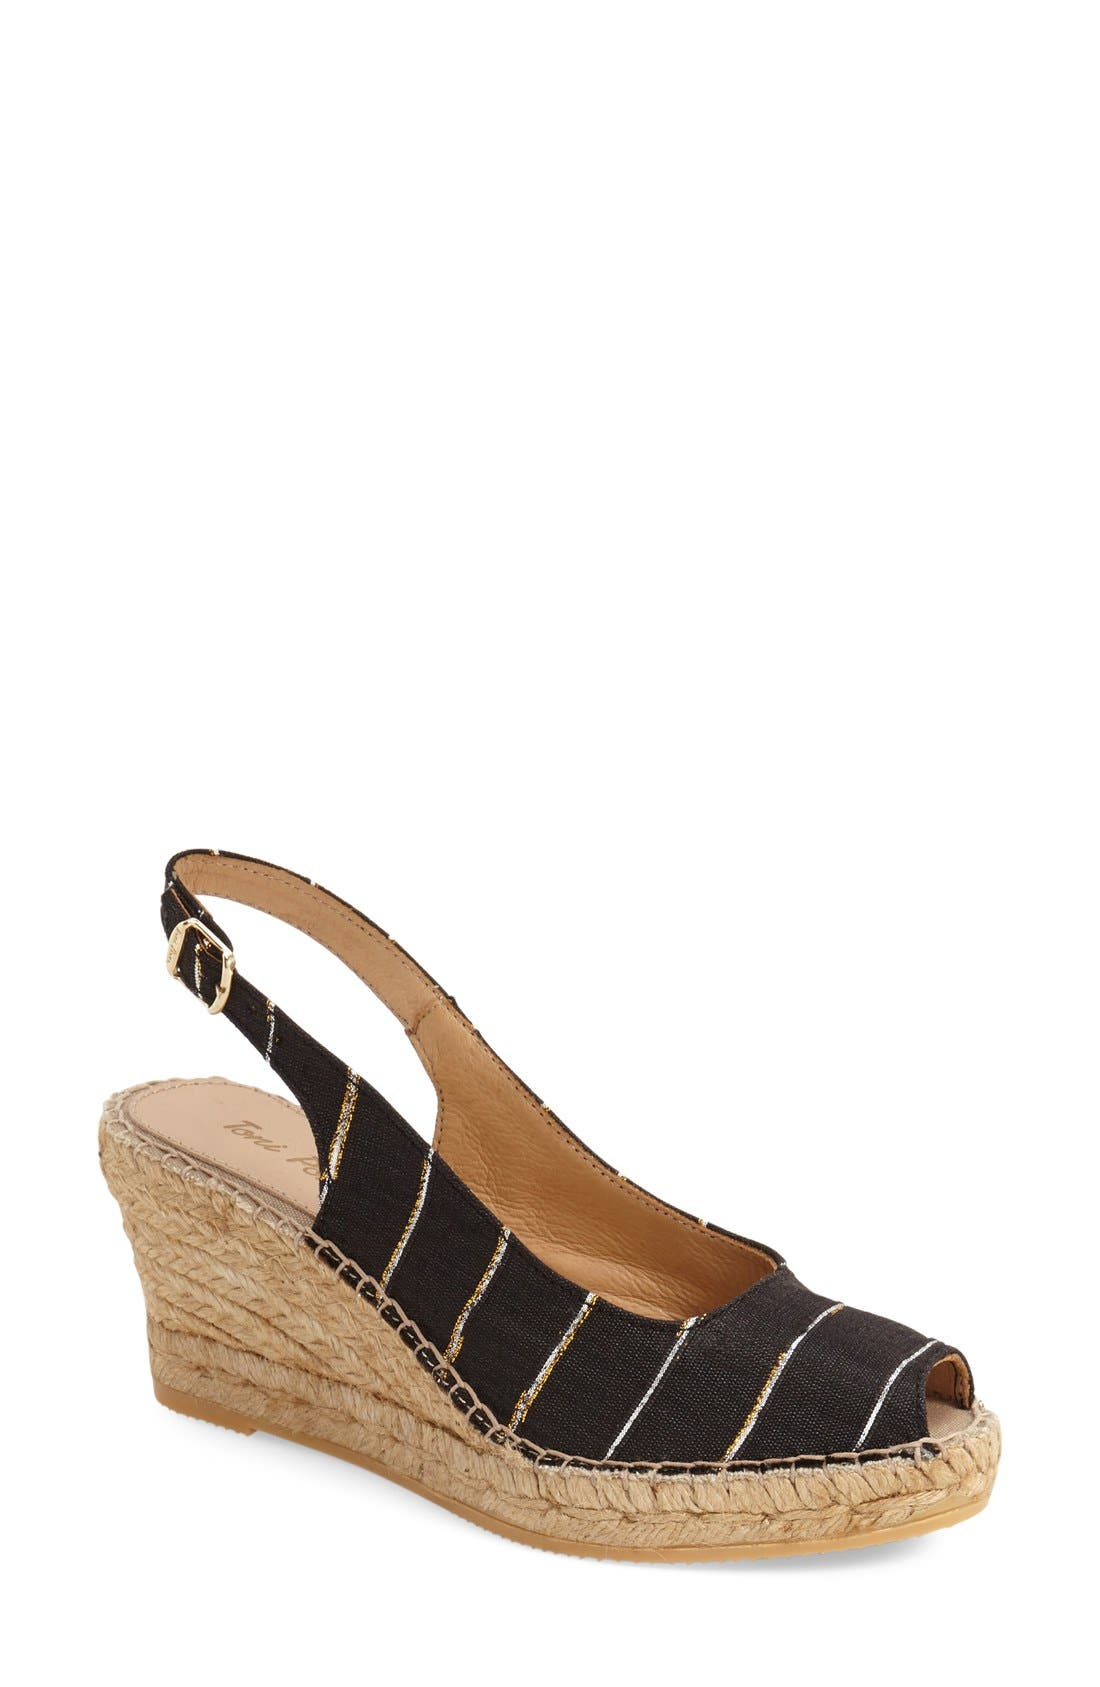 'Carmina' Silk Slingback Wedge Sandal,                             Main thumbnail 1, color,                             BLACK STRIPE